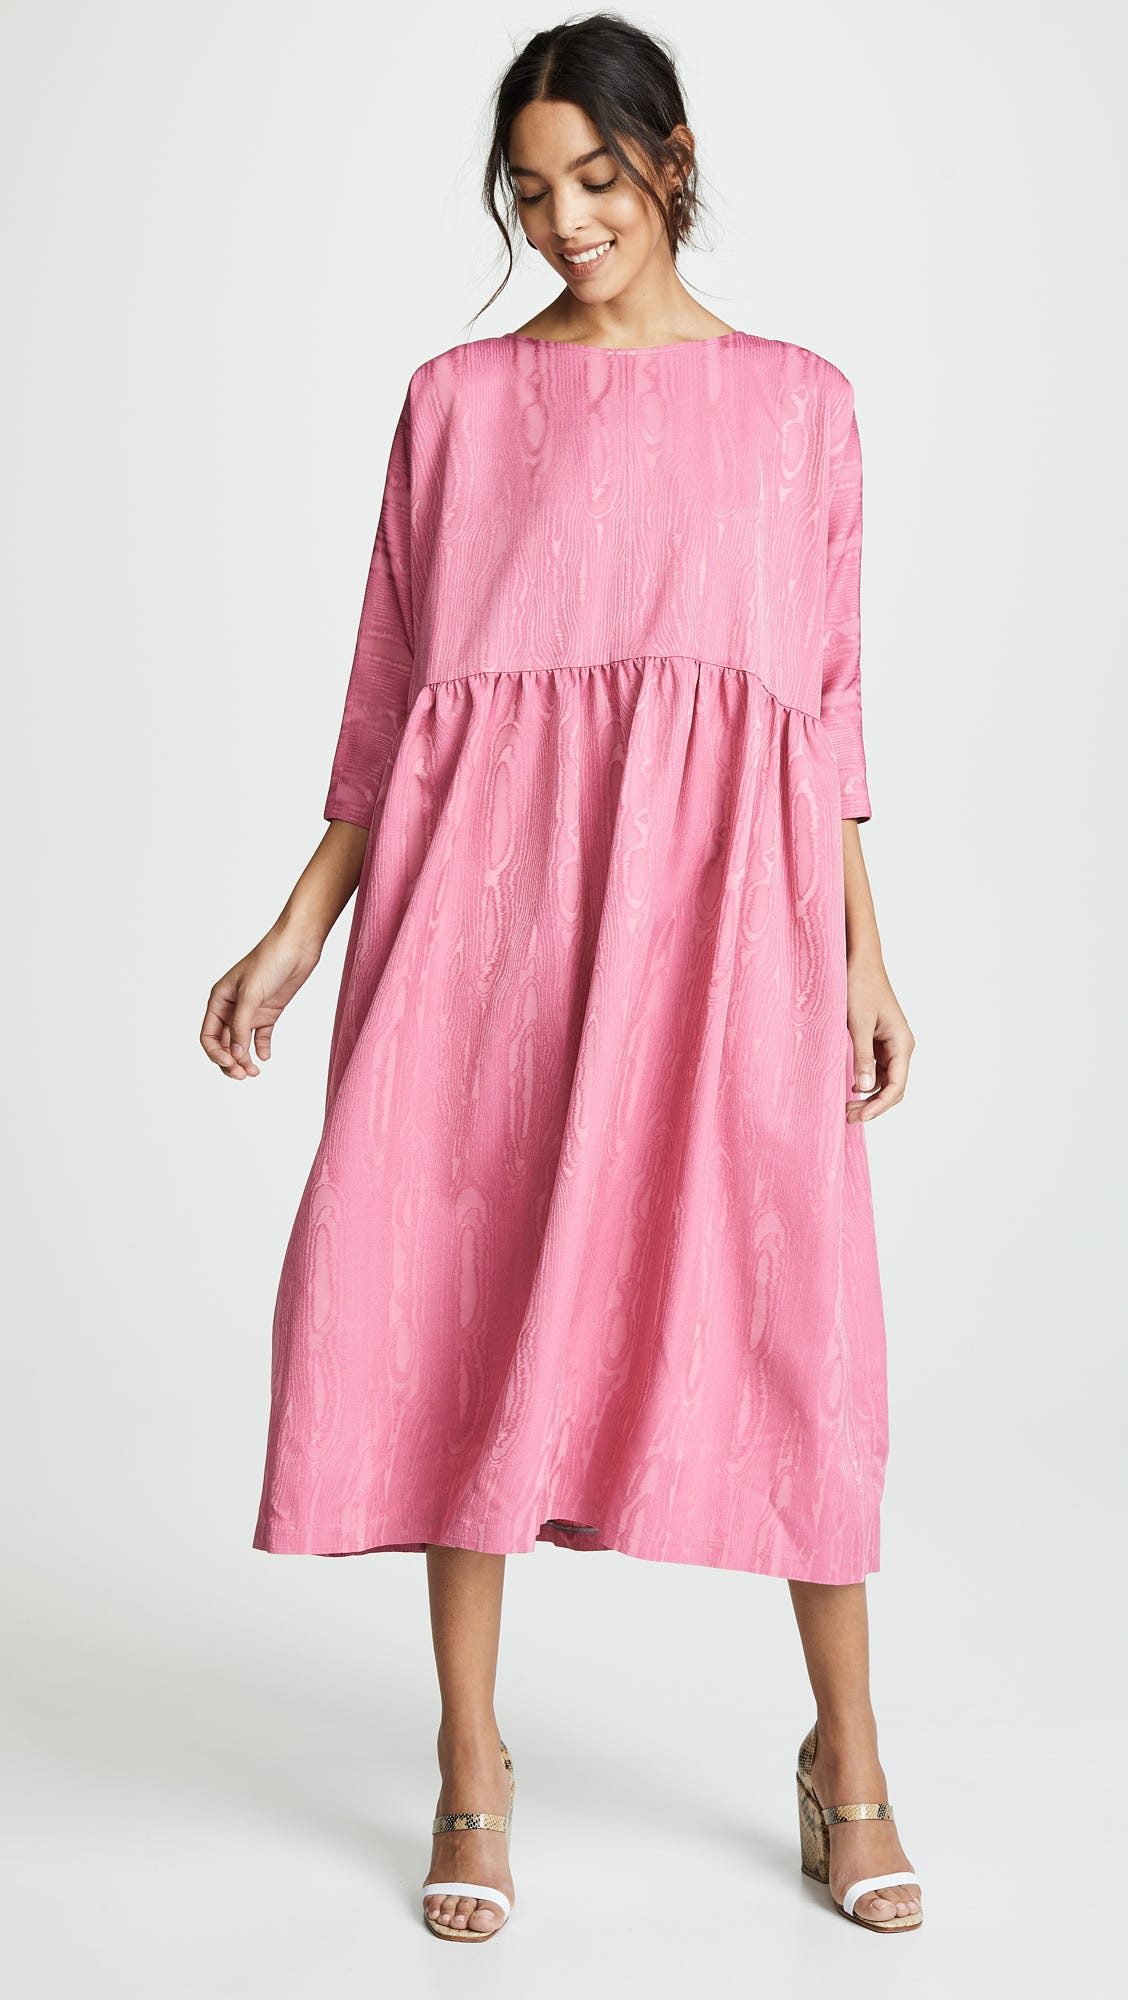 98da4da3554 Best Shopbop Sale Items To Shop For Spring Summer 2019